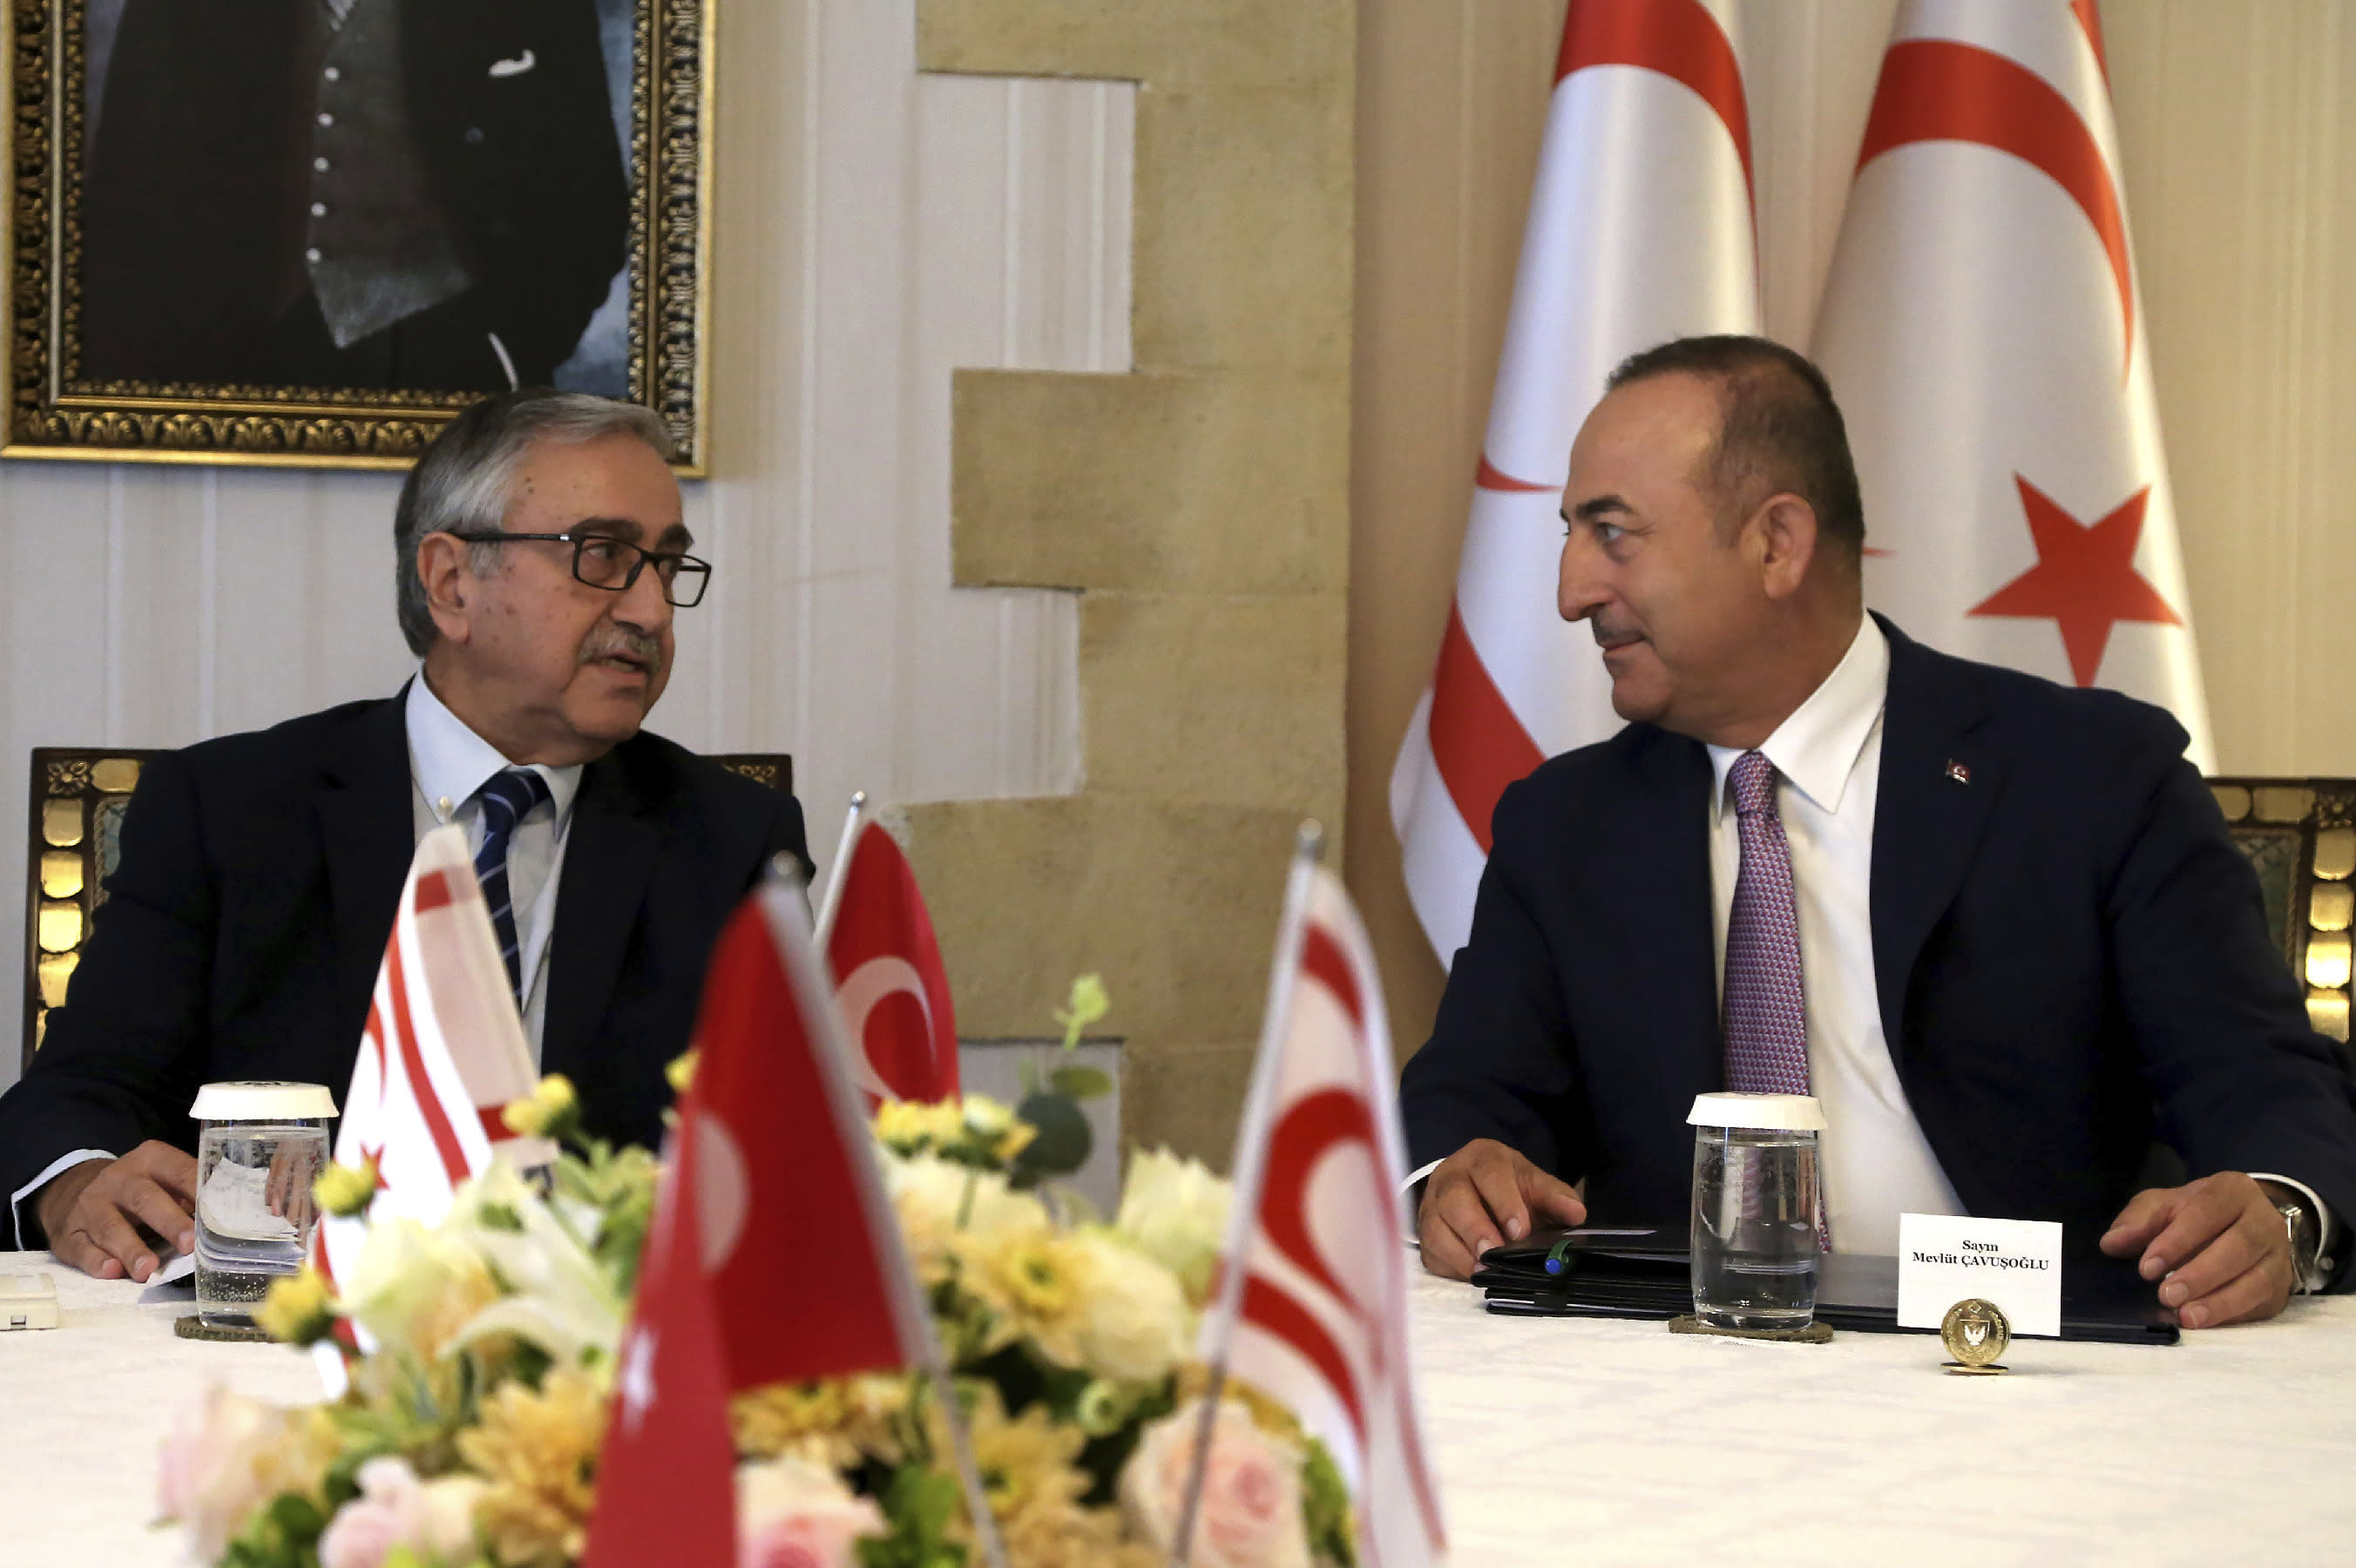 Turkish Foreign Minister Mevlut Cavusoglu, right, talks with Turkish Cypriot leader Mustafa Akinci during a meeting in the Turkish occupied area in the northern part of divided capital Nicosia, Cyprus, Monday, Sept. 9, 2019. Cavusoglu is in the northern part of divided Cyprus for three-day visit. (AP Photo/Petros Karadjias)